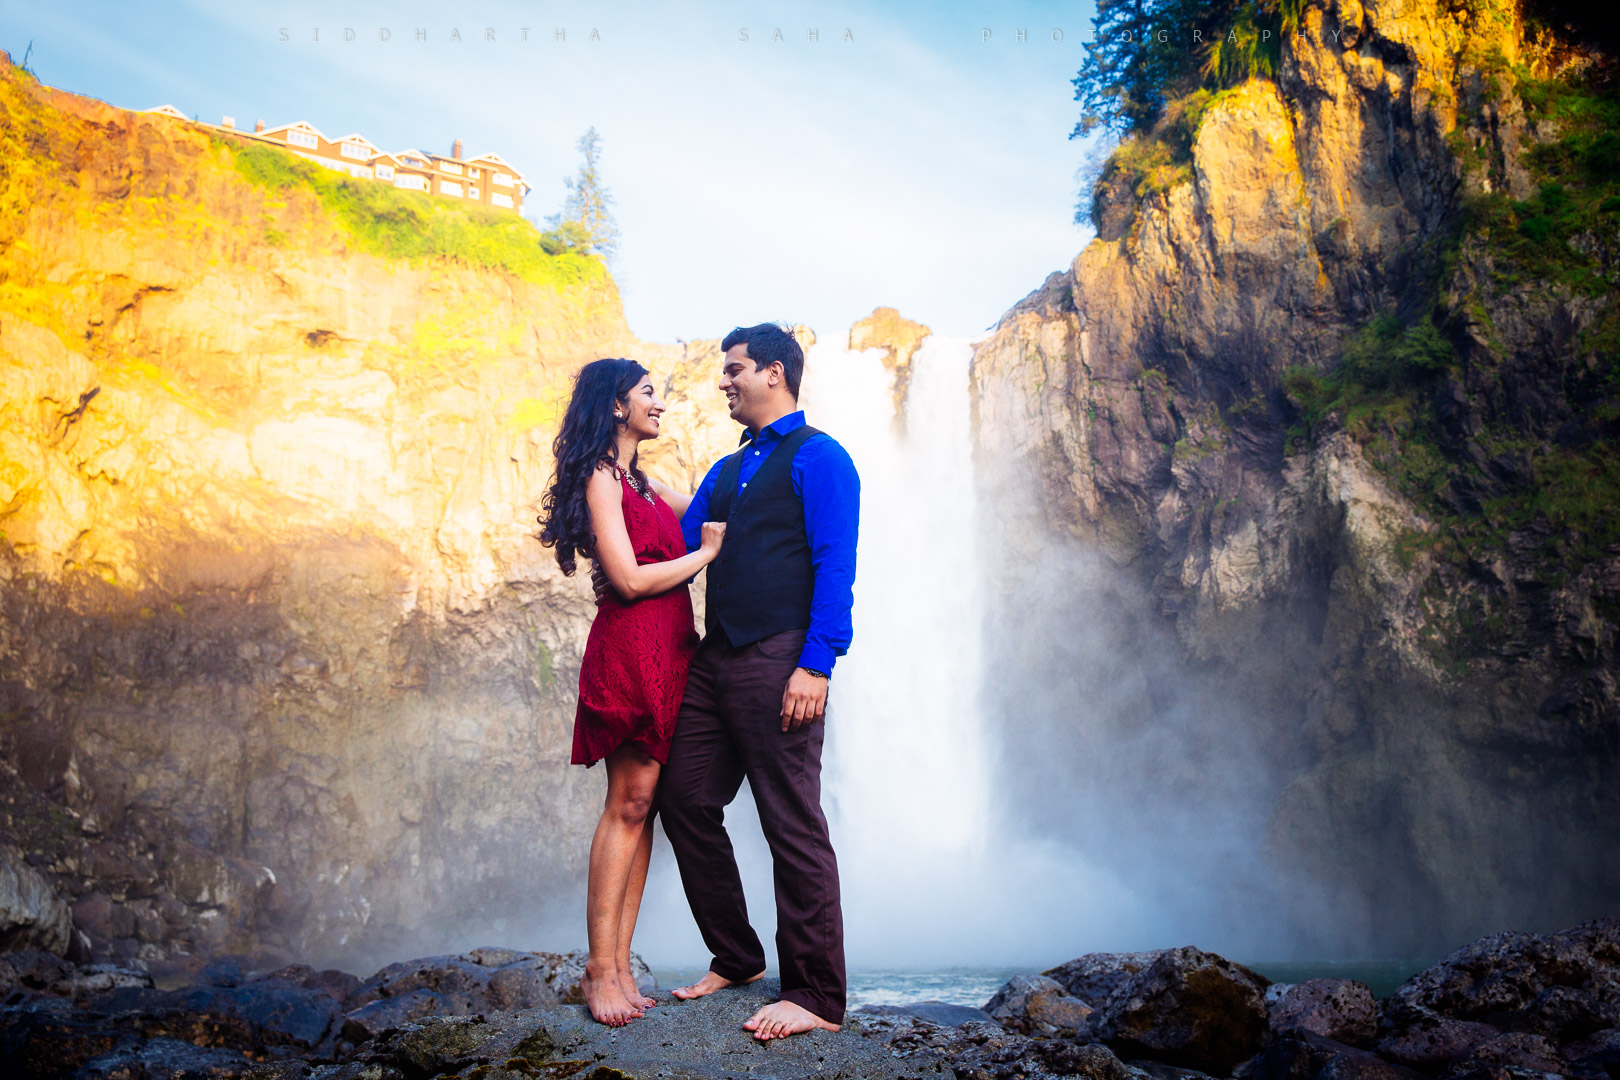 2015-04-19 - Saloni Vaibhav Shoot Snoqualmie-9